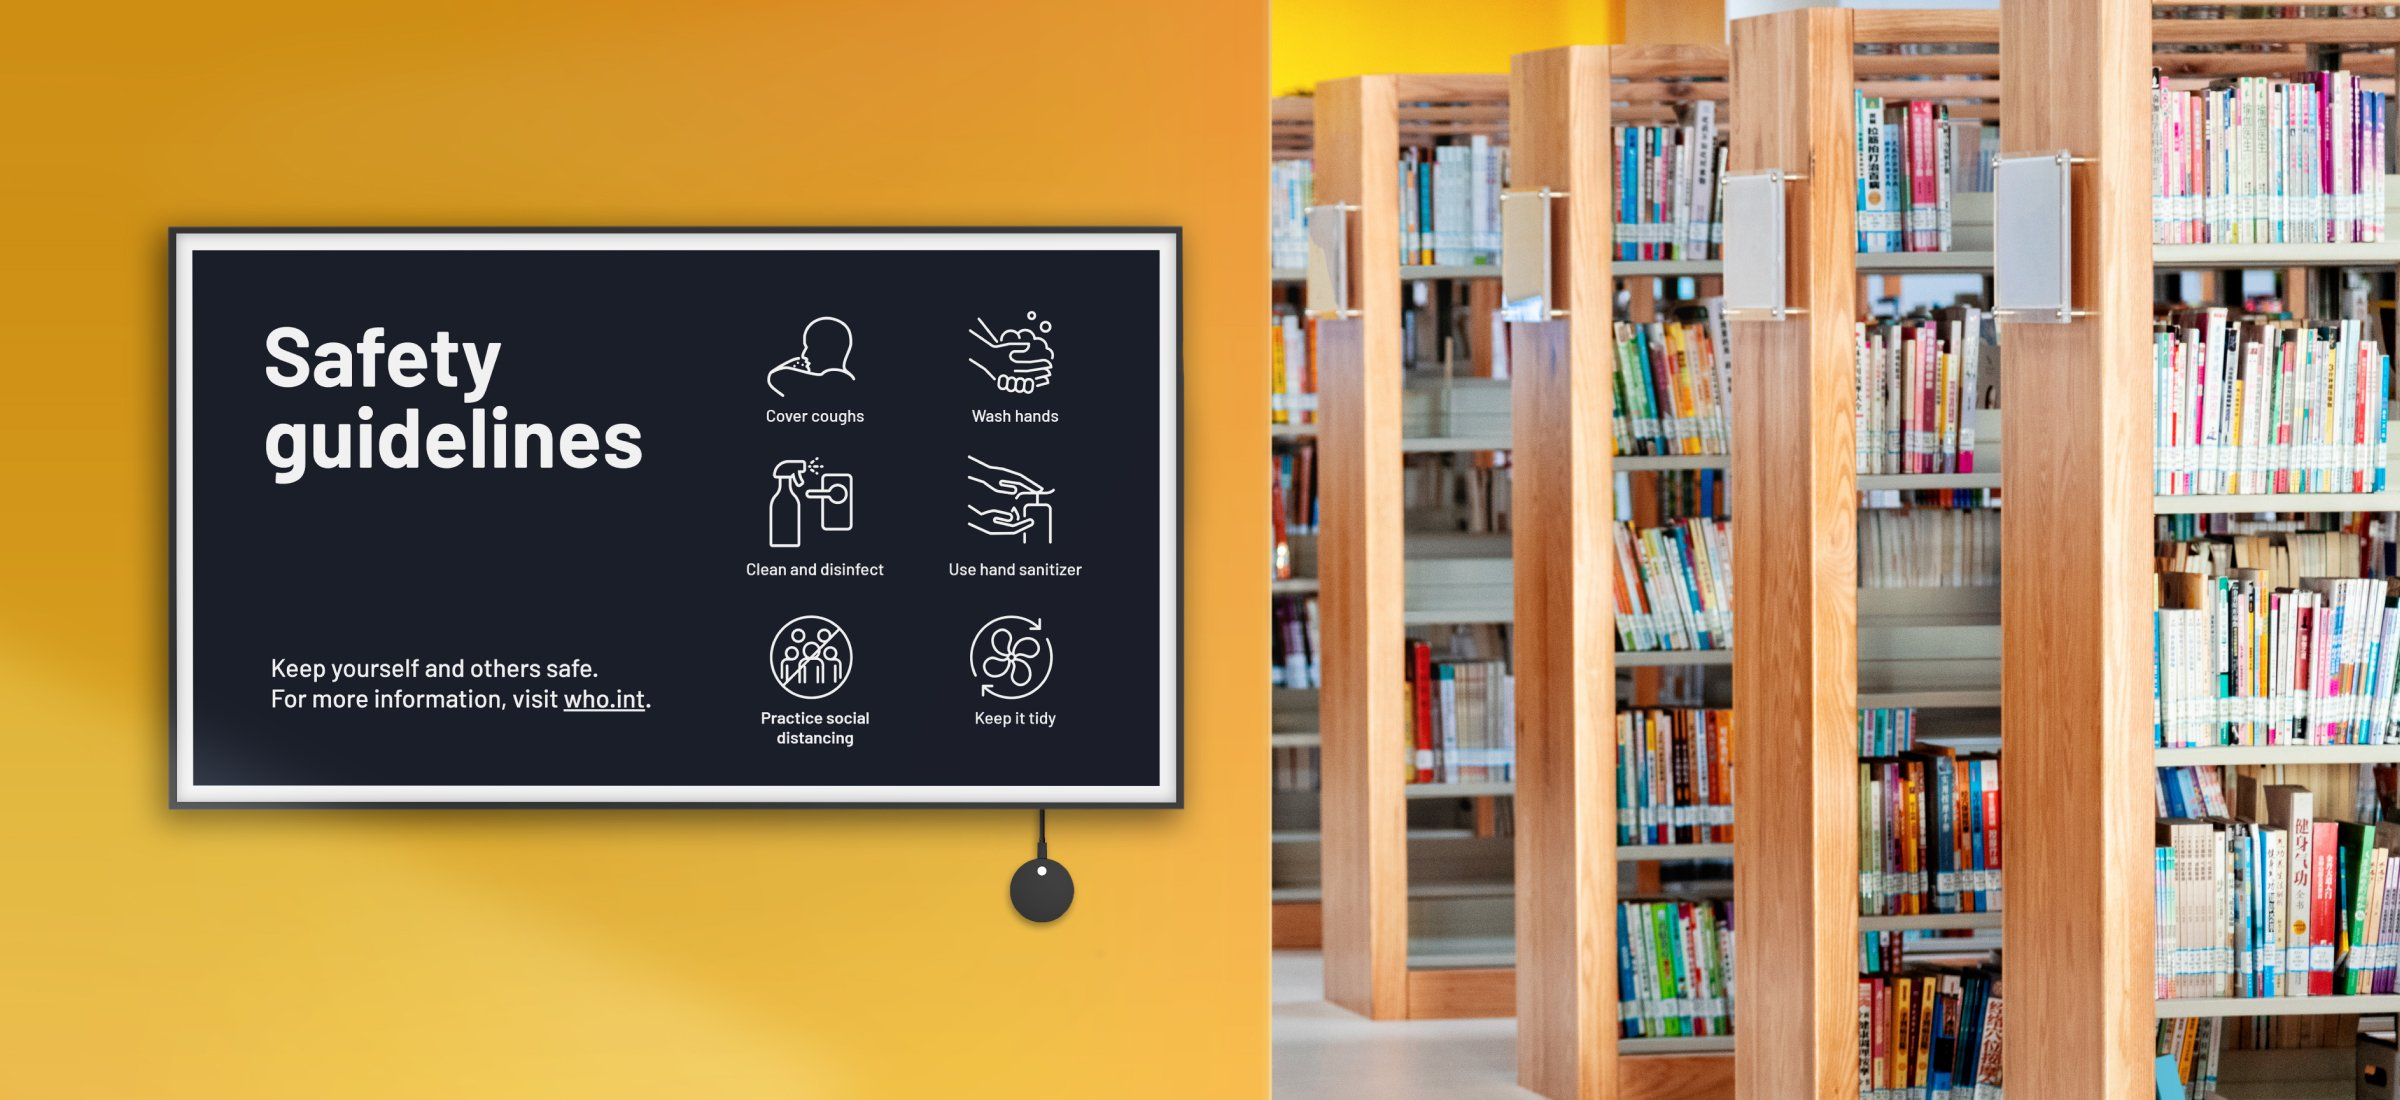 How digital signage can promote safety and awareness in school common areas